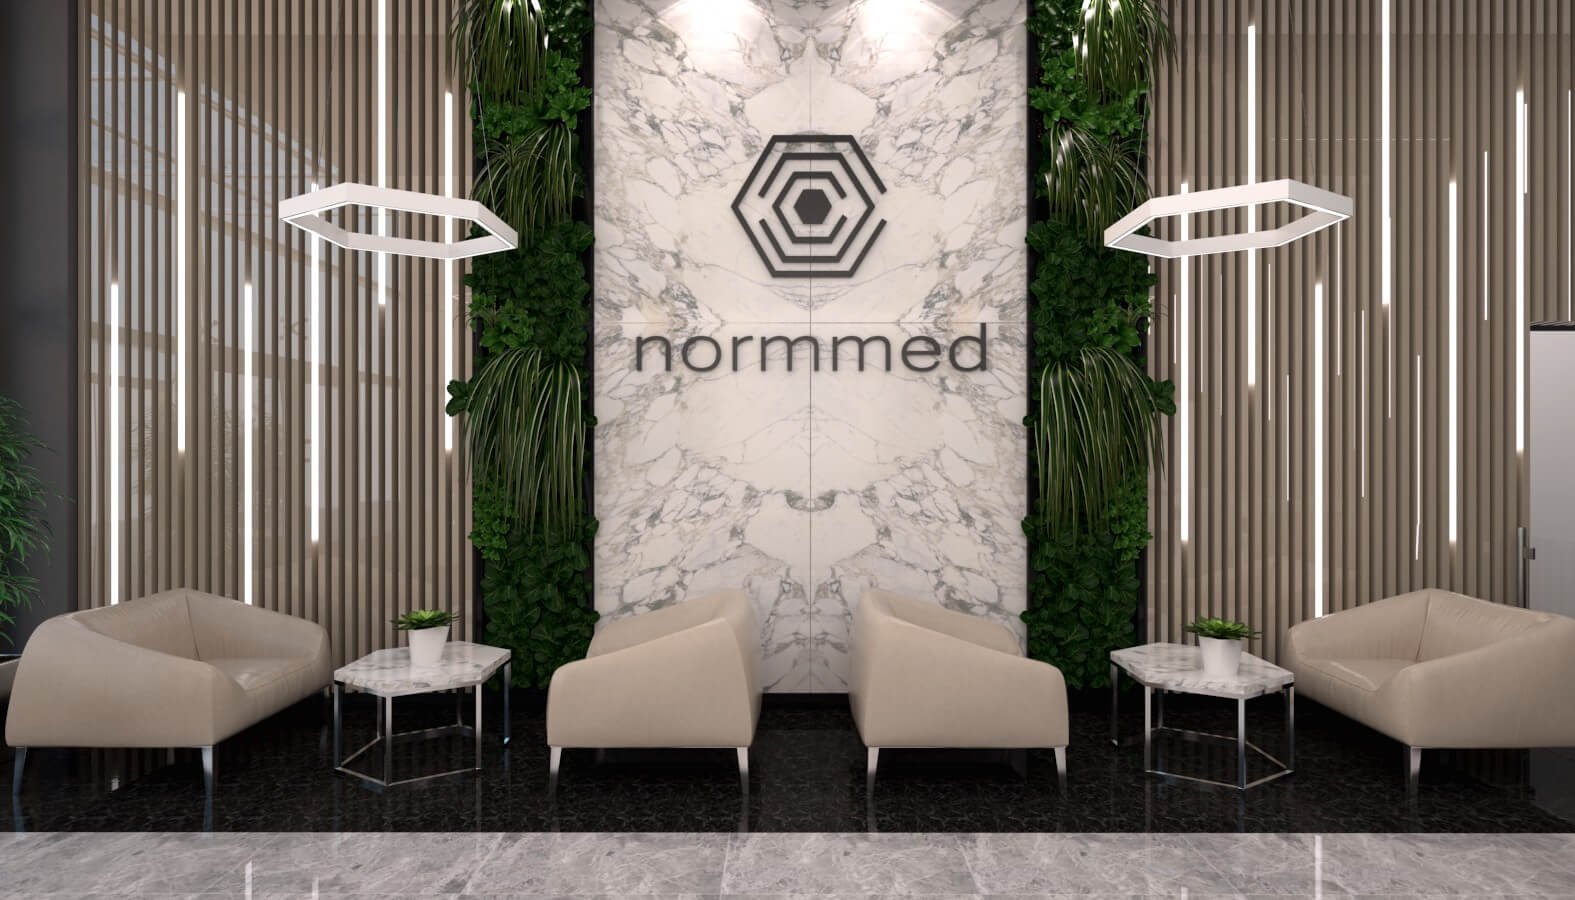 3644 Norm Offices